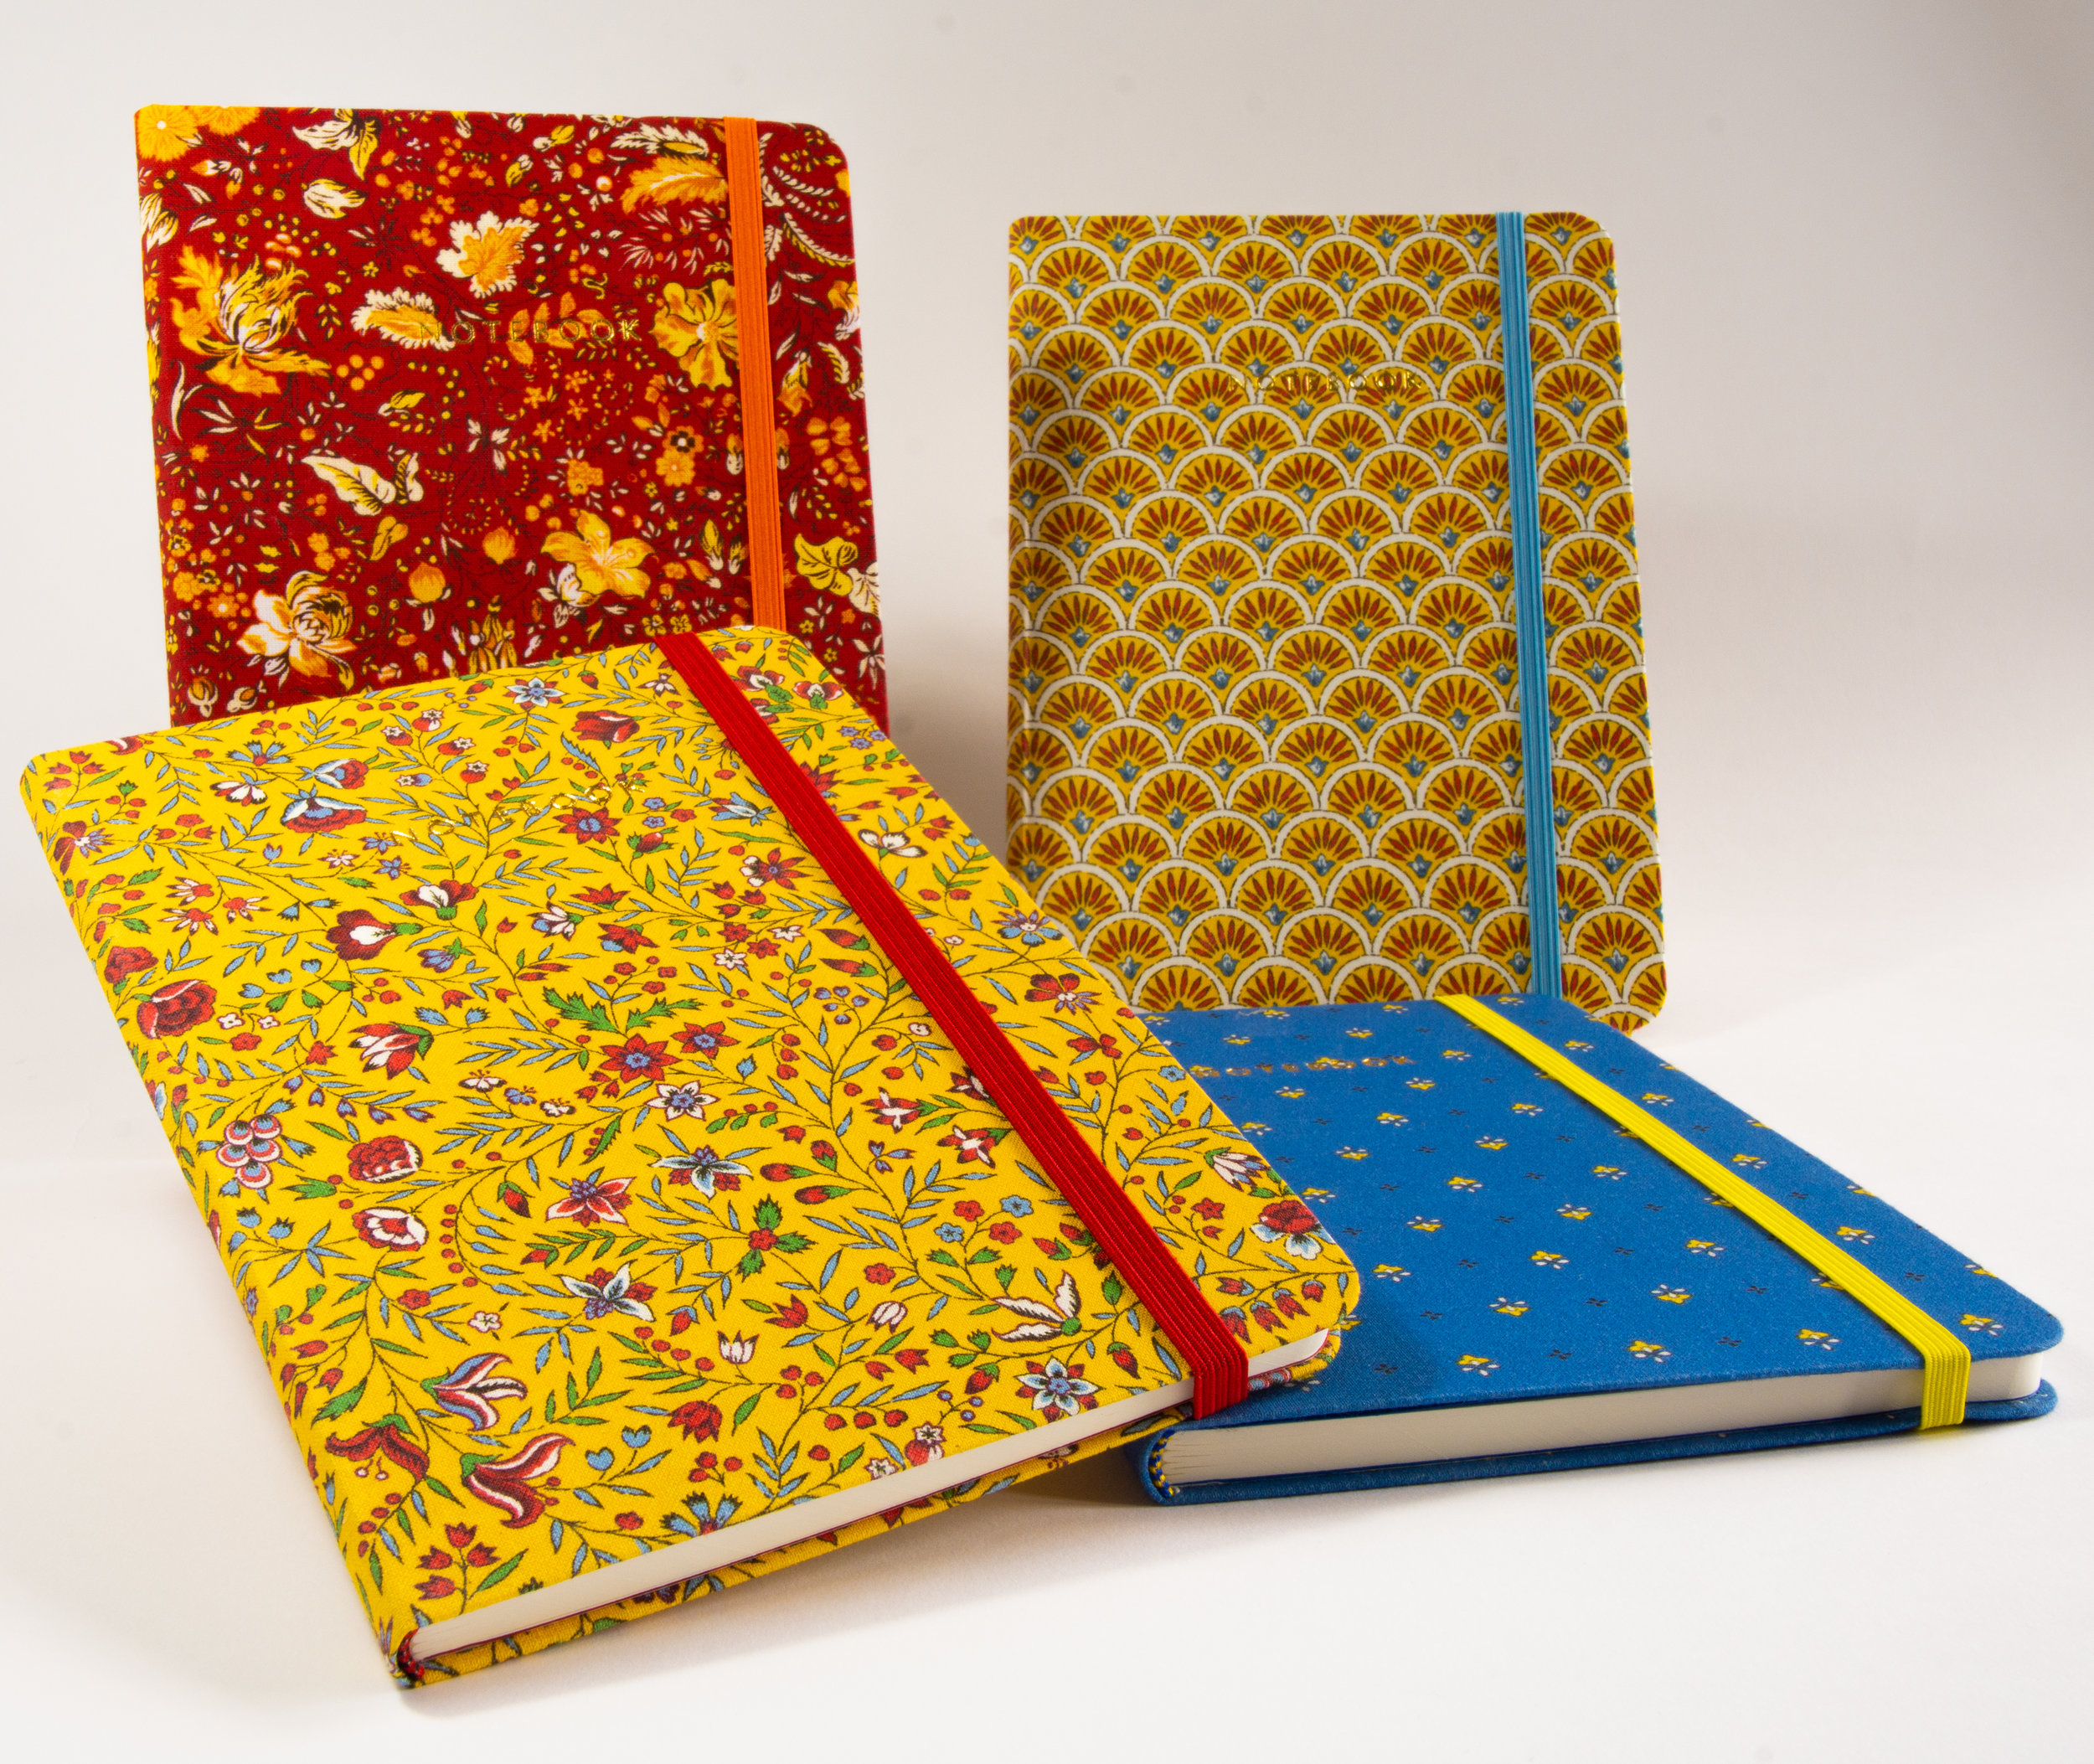 Provence notebooks group view.jpg